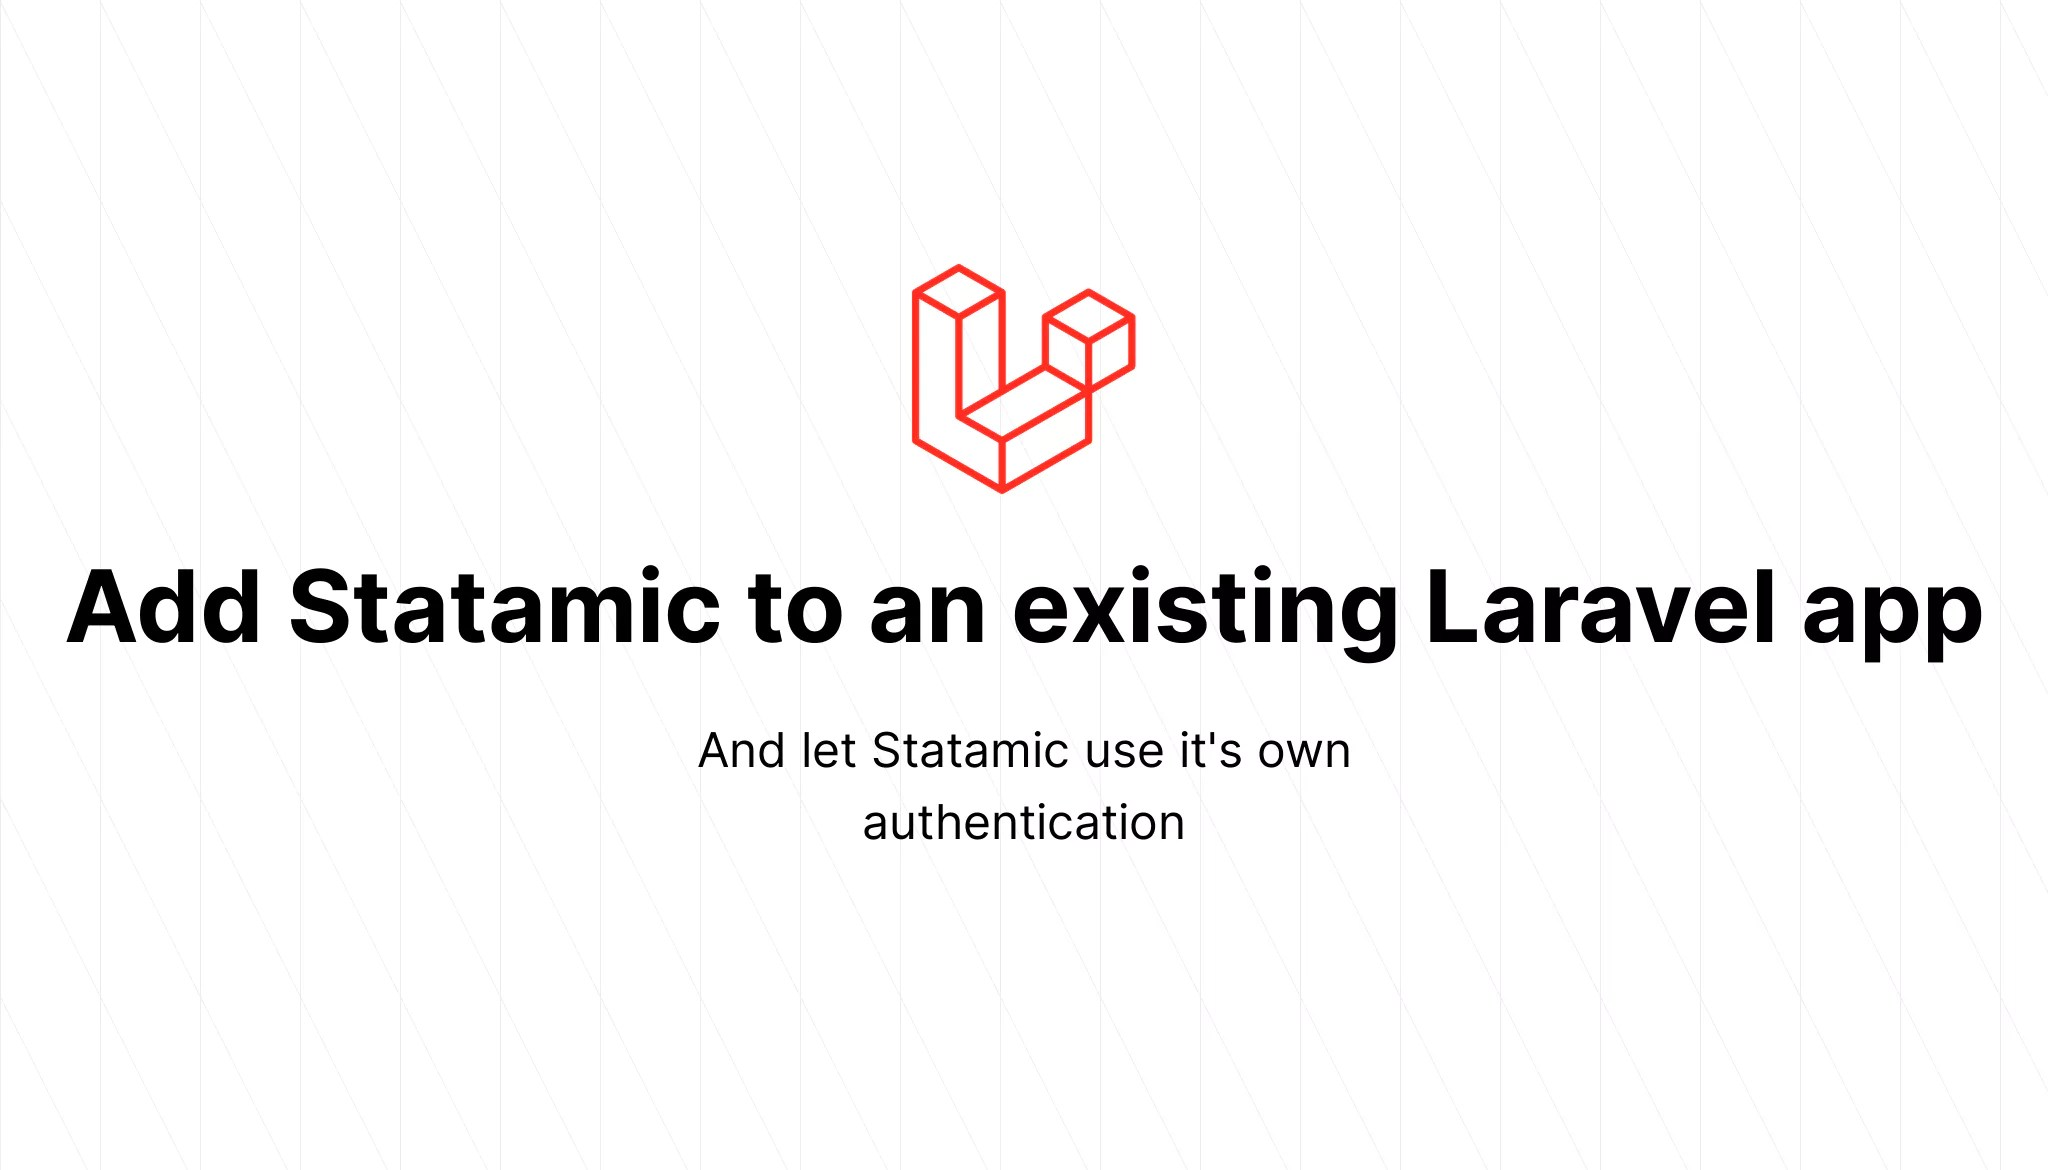 Add Statamic to an existing Laravel app